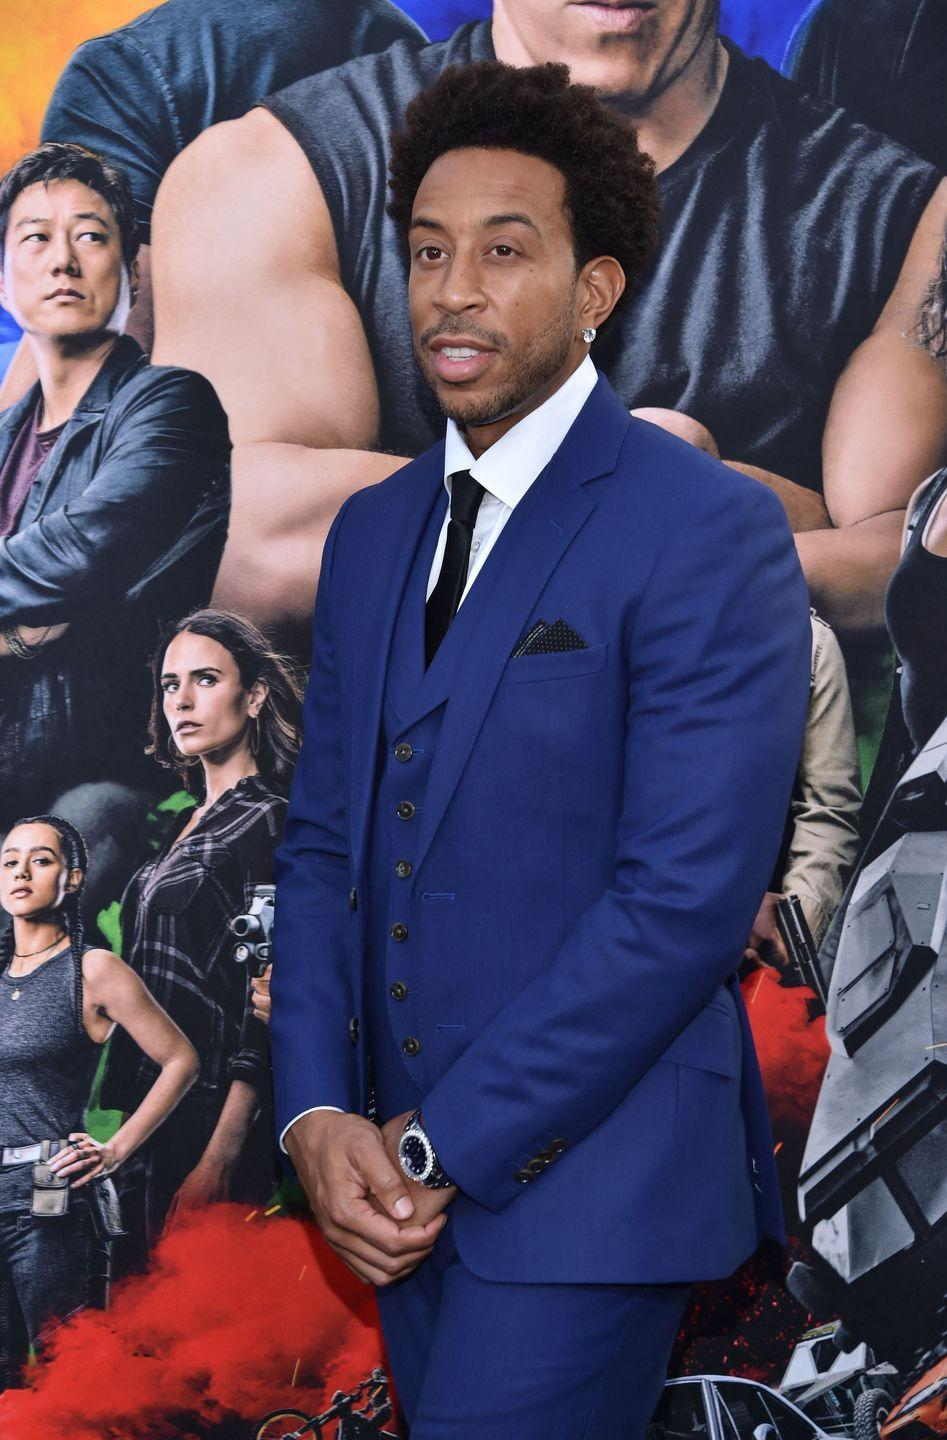 <p>The rapper/actor has now played Tej Parker in six of the <em>Fast </em>films. Ludacris continues to balance his music career with acting credits. </p>